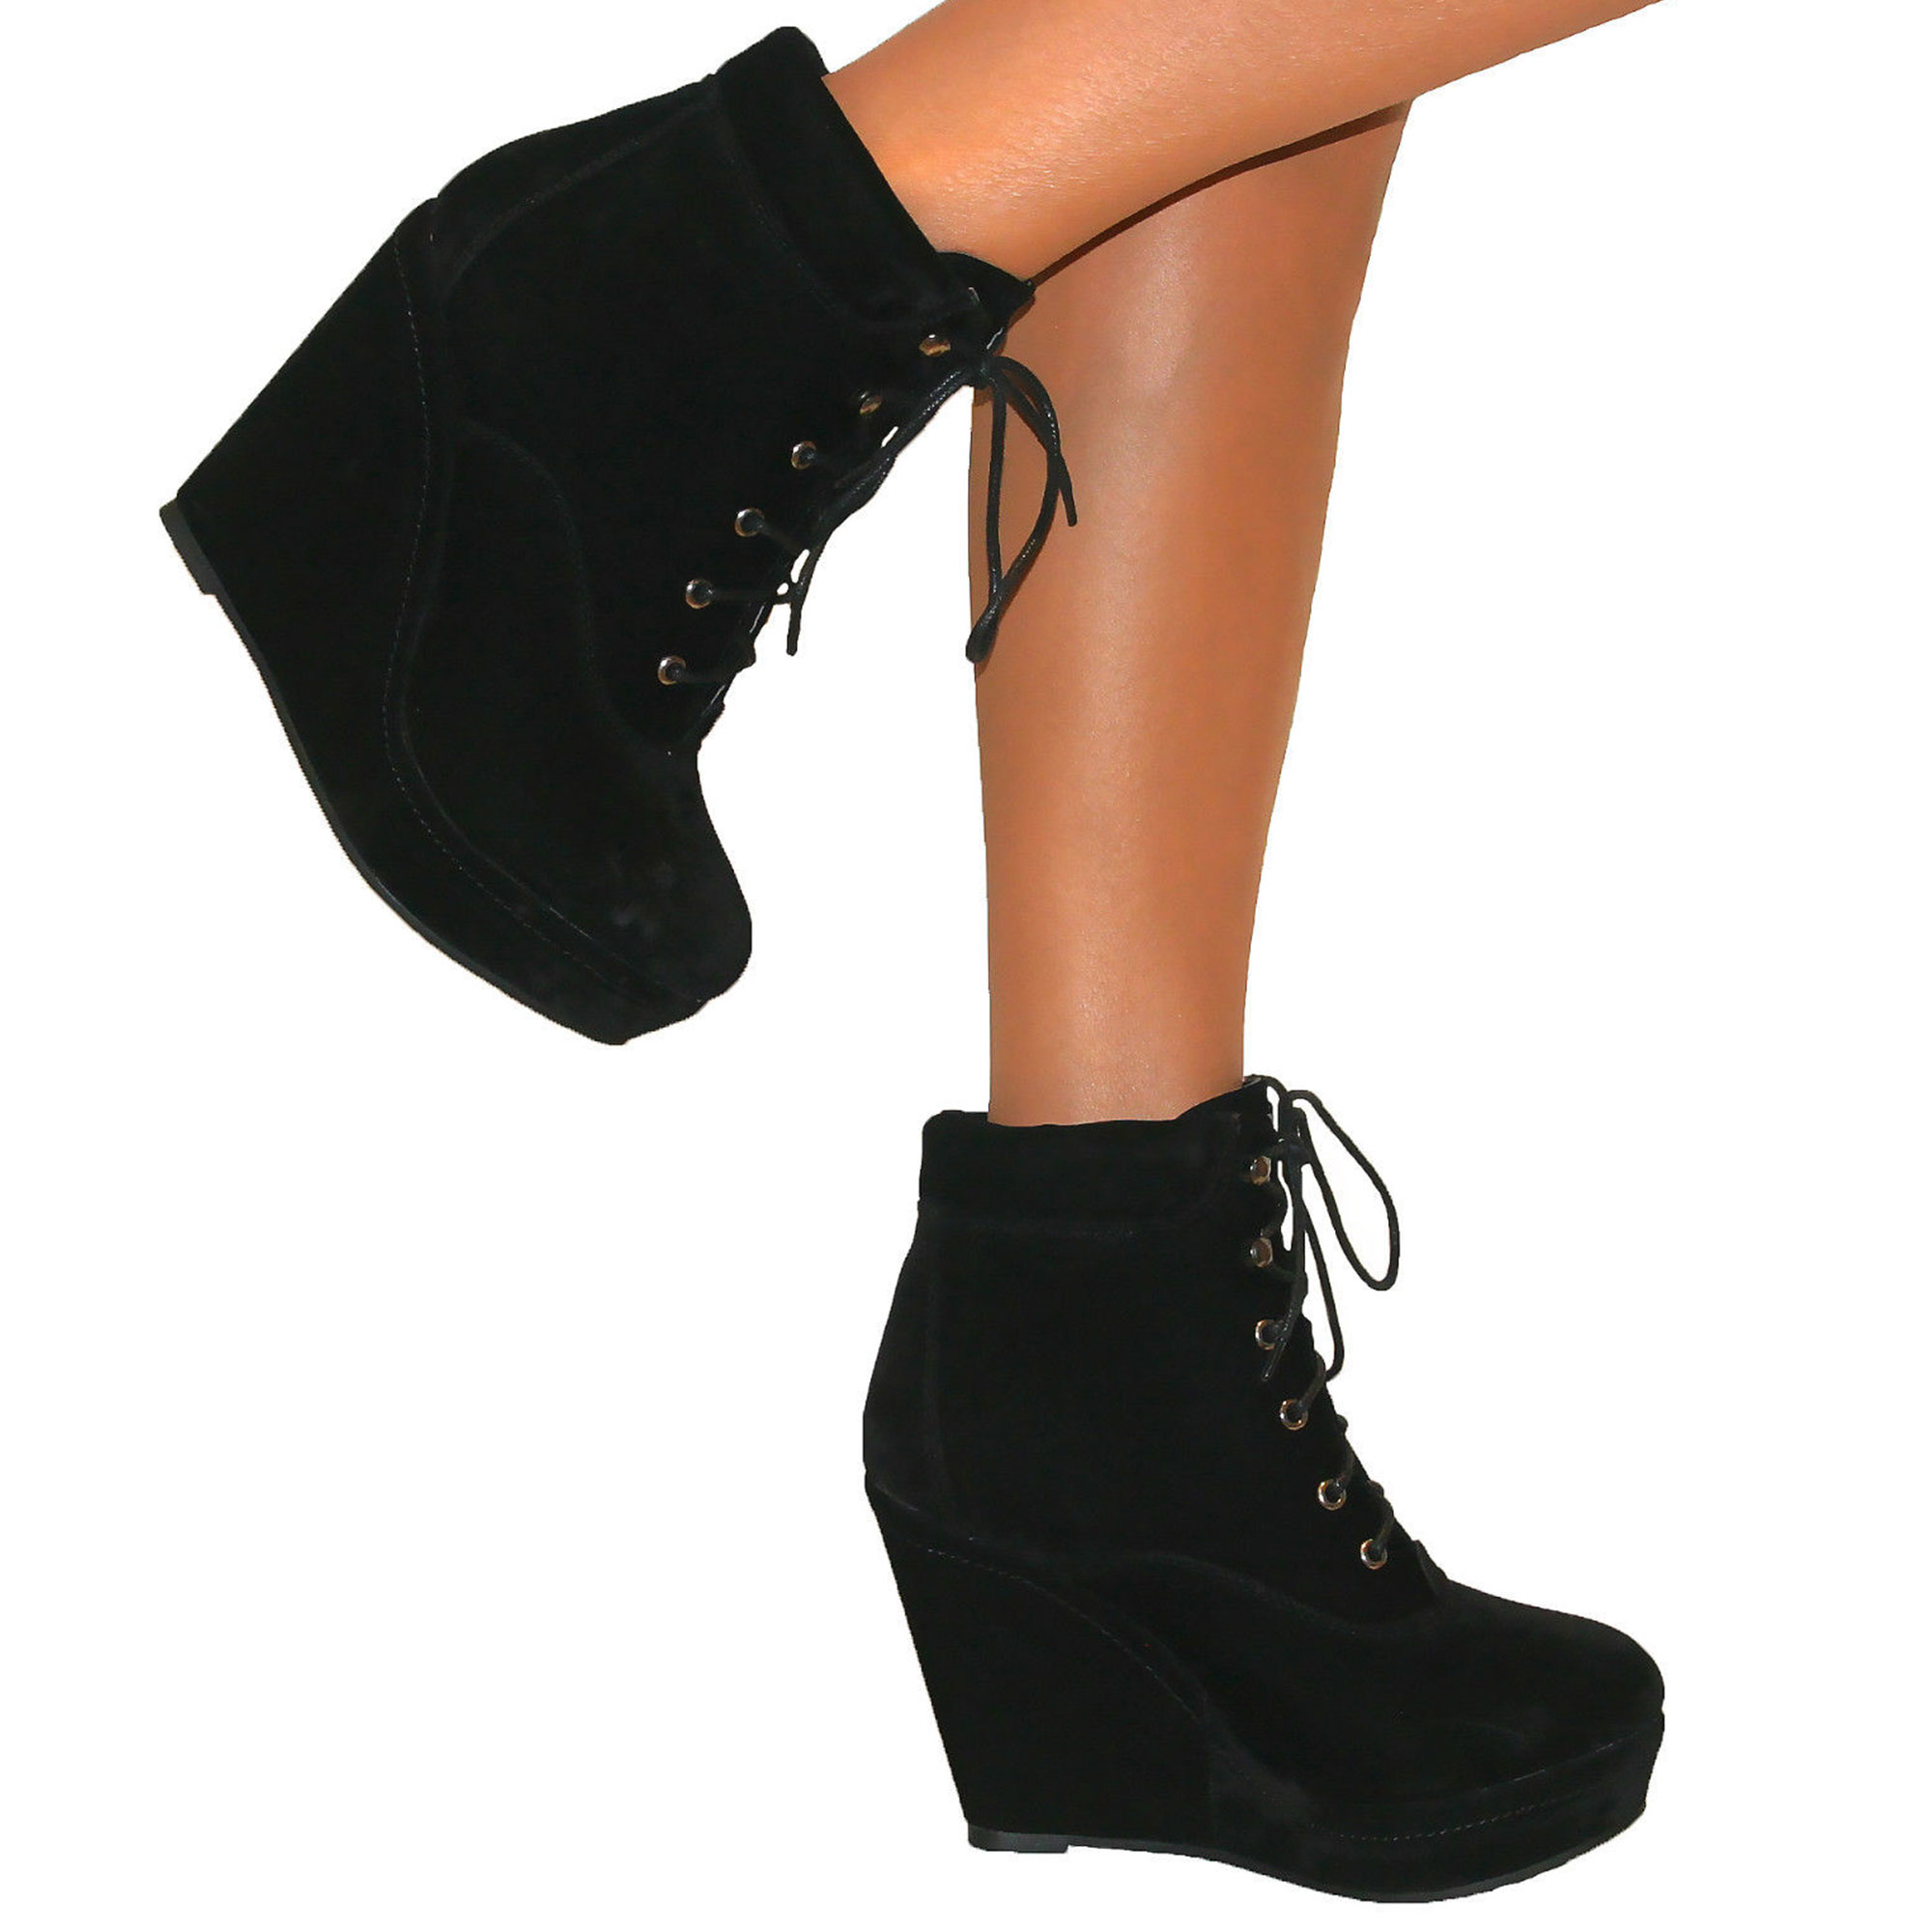 WOMENS BLACK WEDGE HIGH HEEL PLATFORM SUEDE LACE UP SHOES